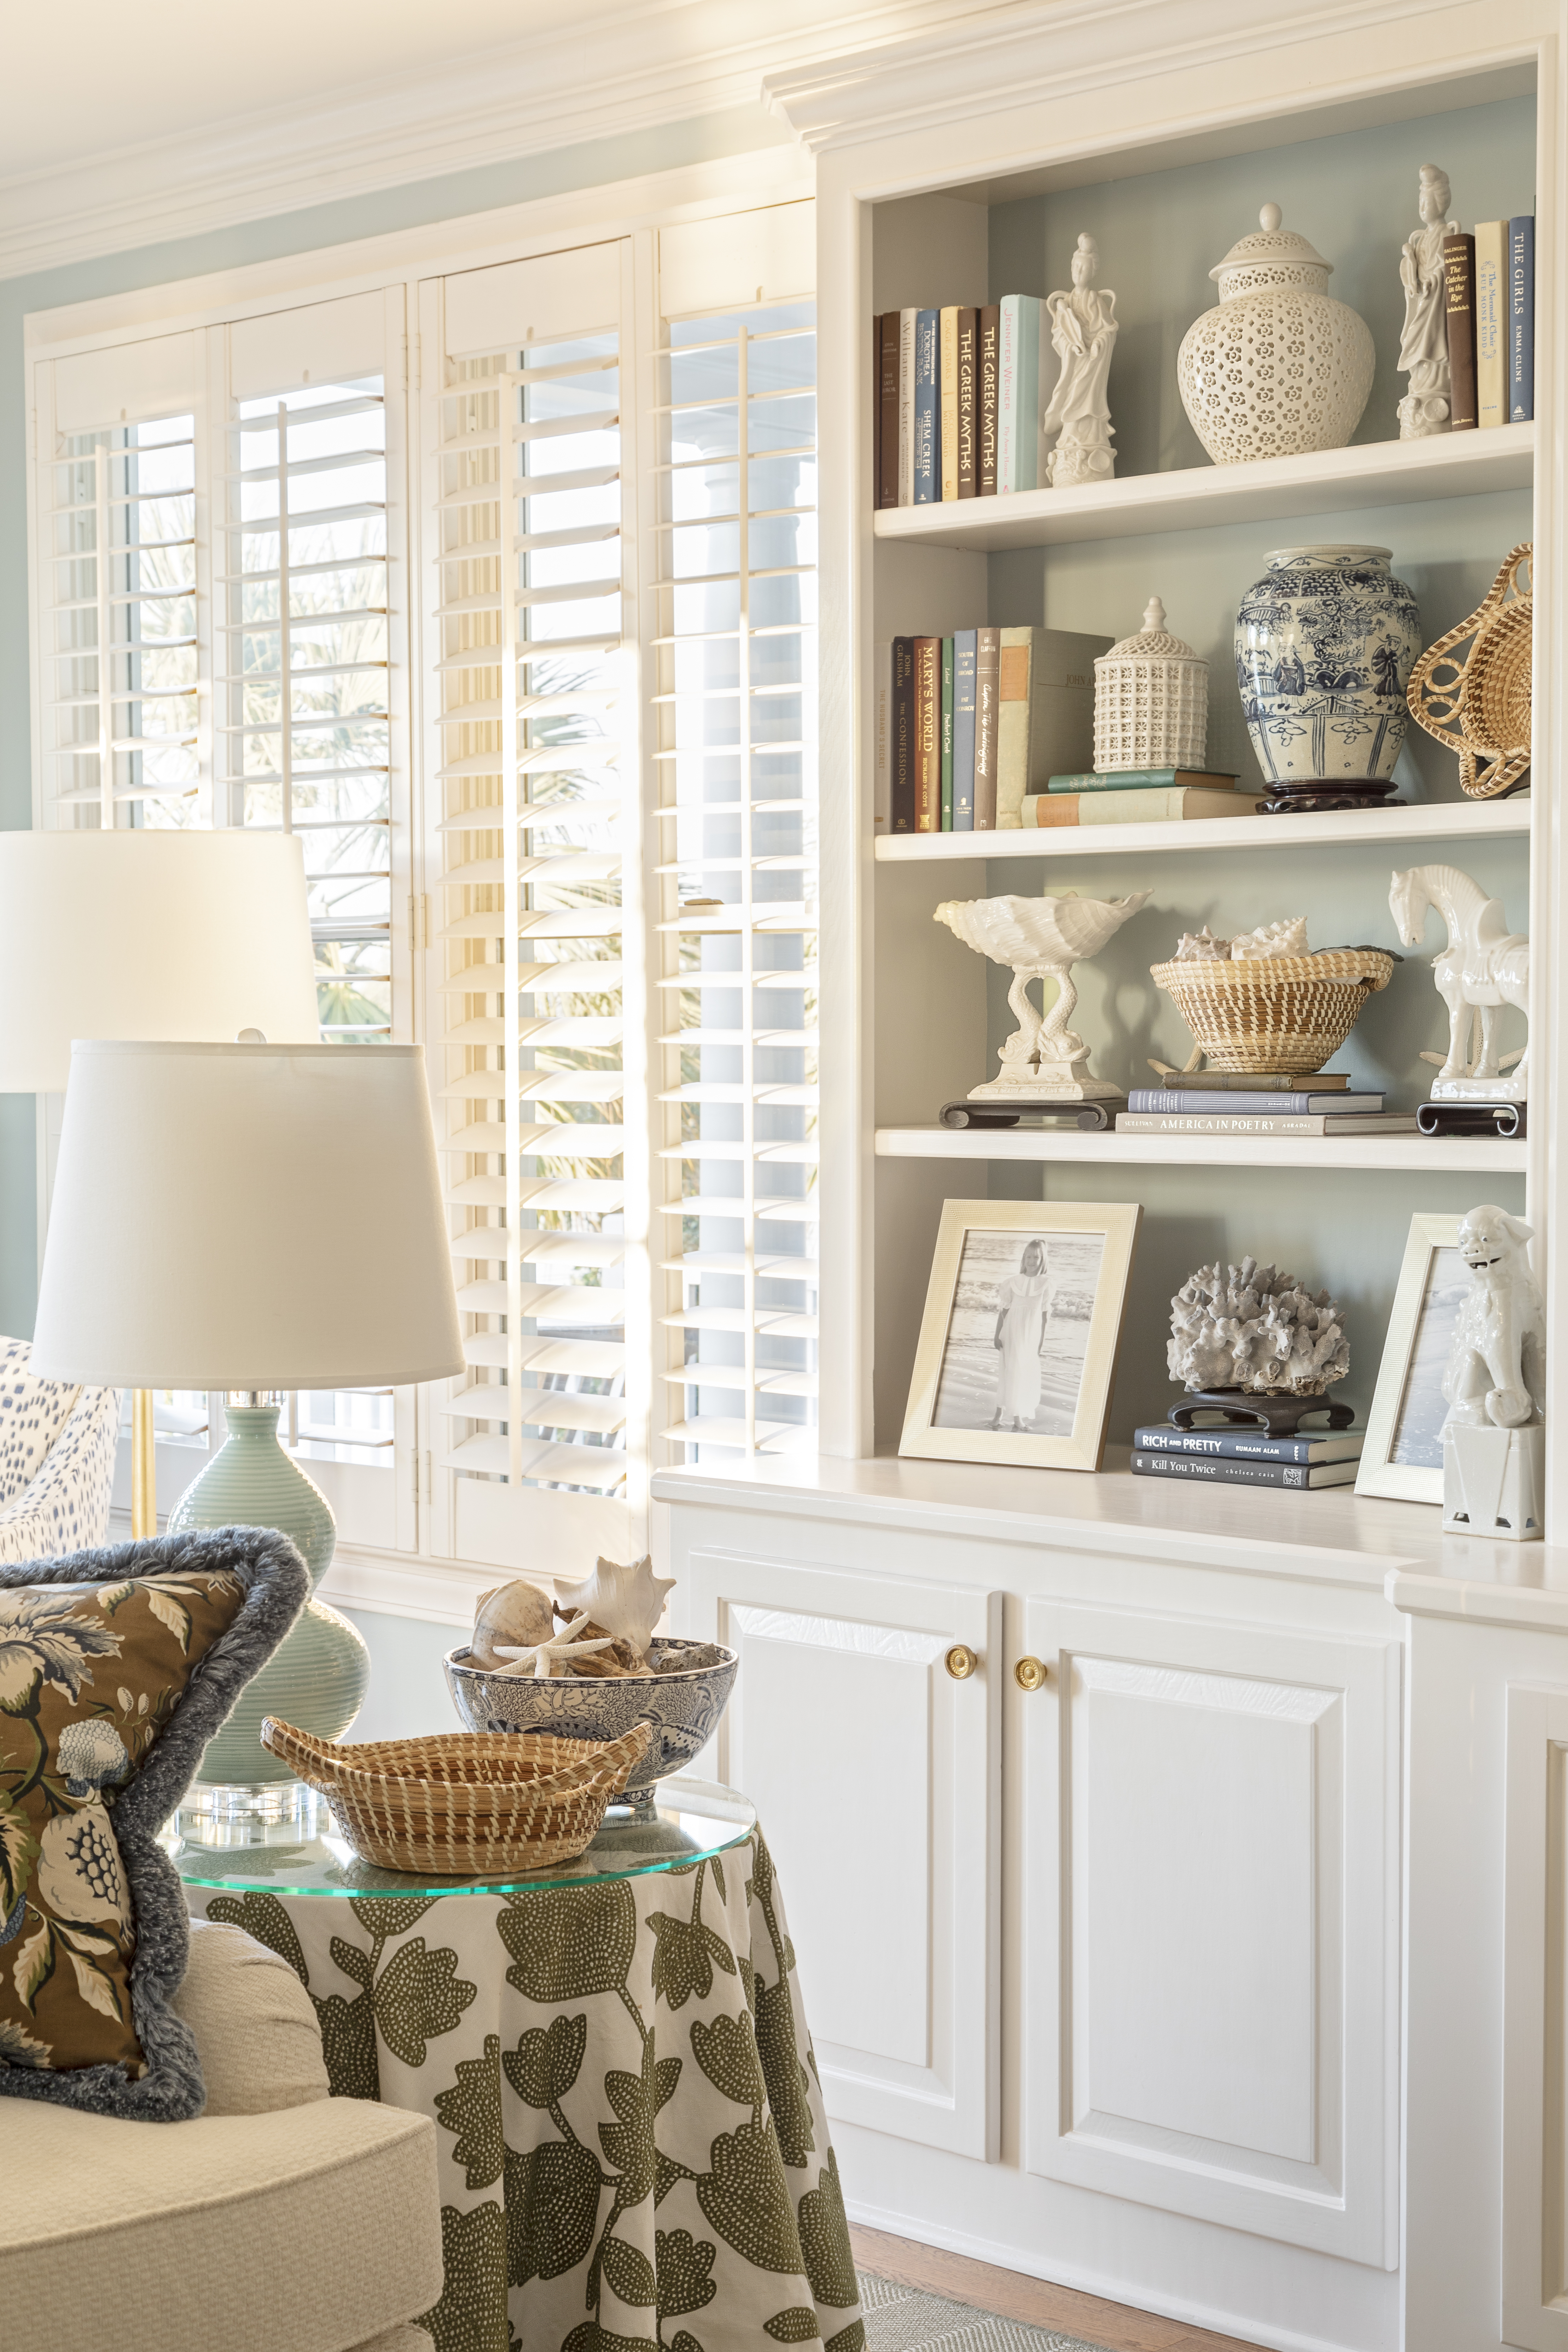 Family mementoes, from treasured photos to an expansive collection of sweetgrass baskets, take pride of place in the built-in shelving, which Horton augmented with aged brass reproduction shutter knobs from the Nathaniel Russel House, sourced at Charleston Hardware Co.